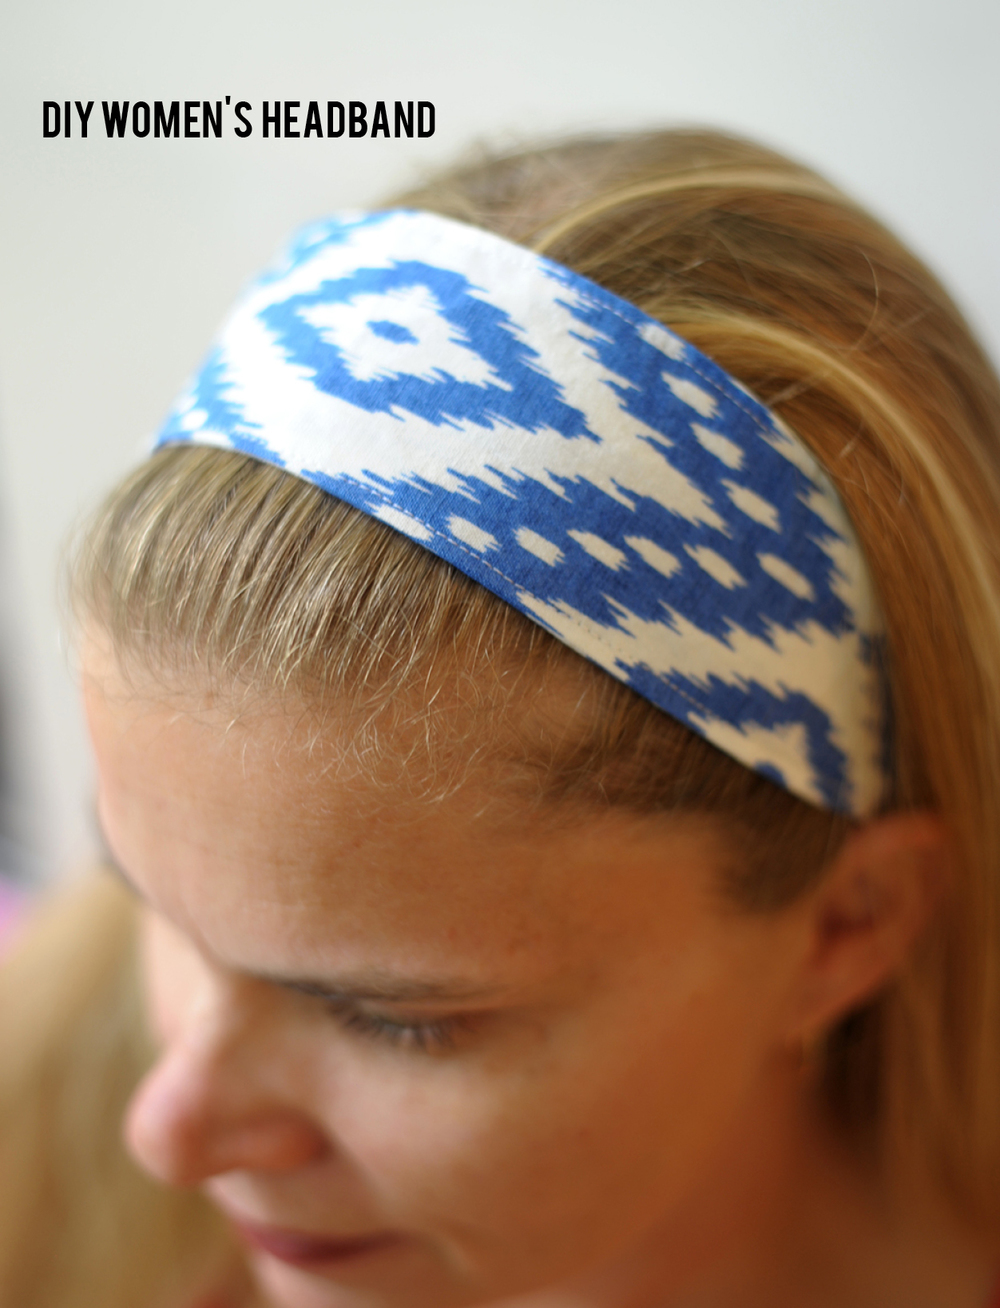 DIY-headband-1-main.jpg